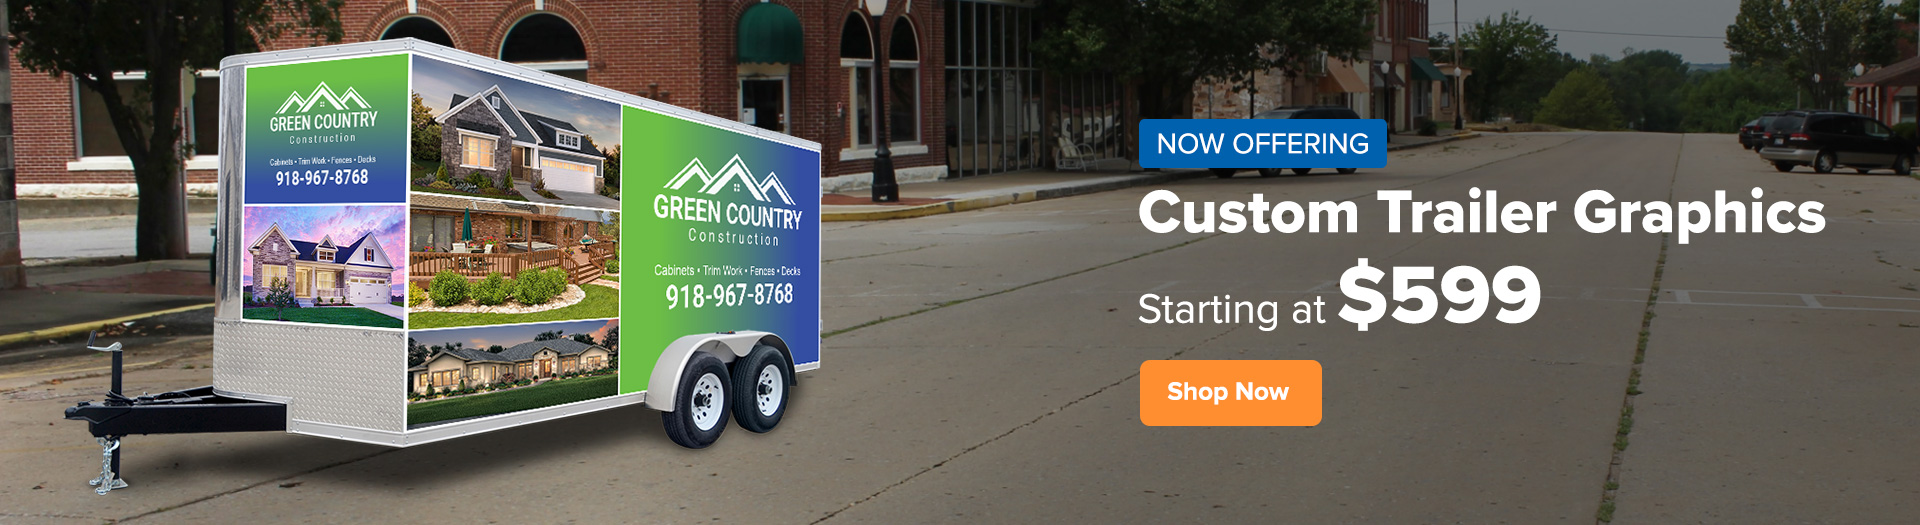 New product Trailer Graphics